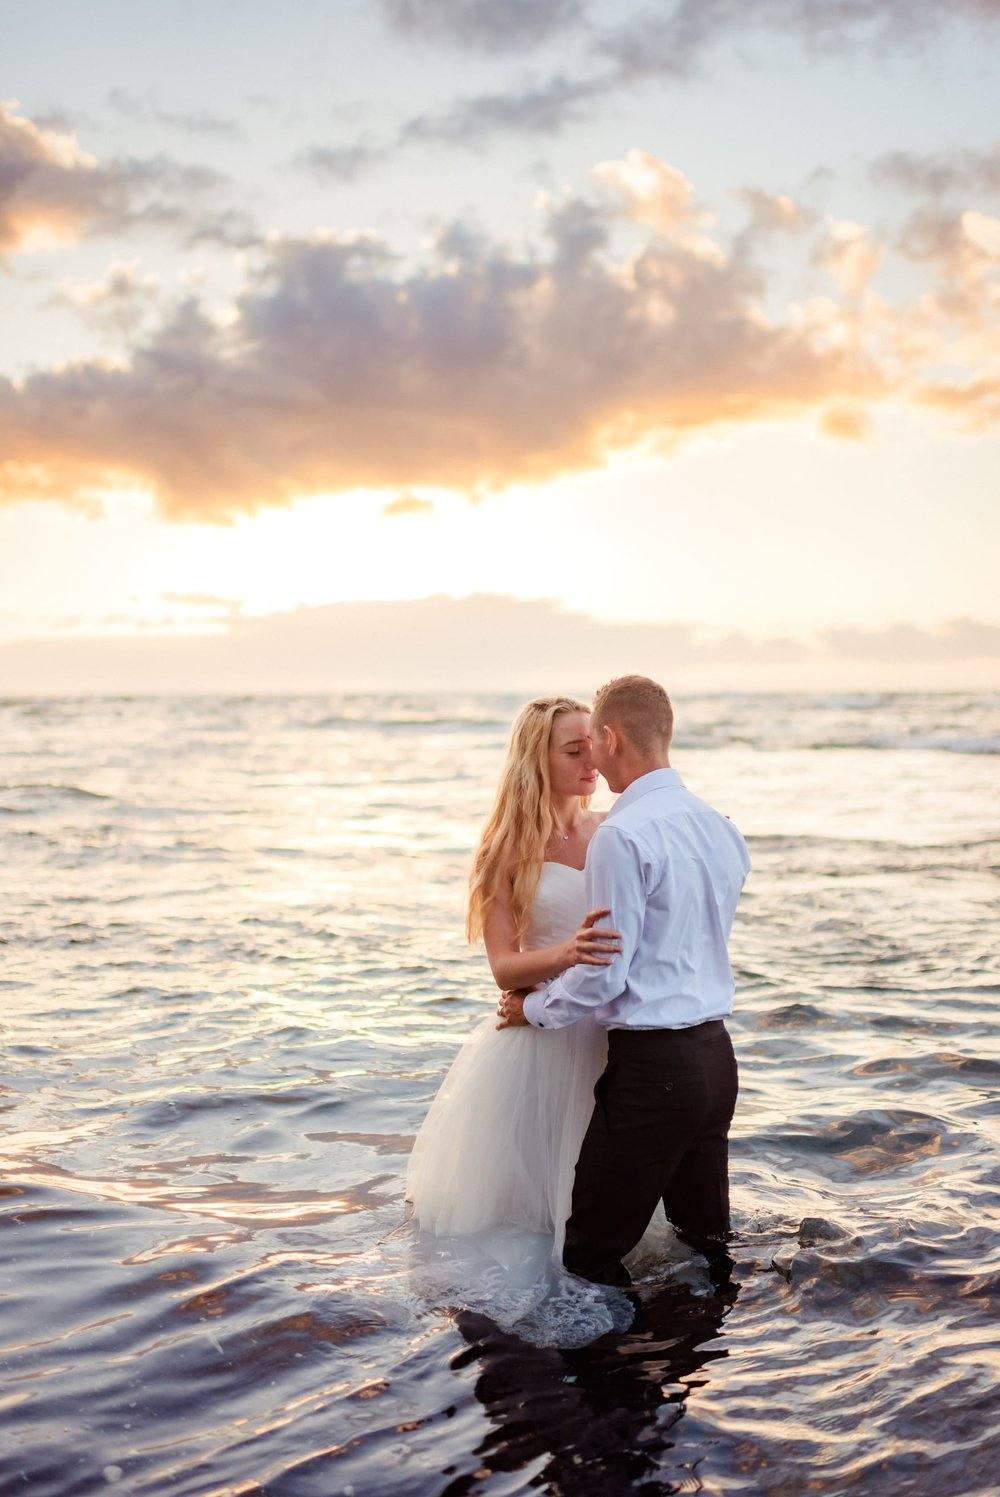 Big-Island-Elopement-Private-Wedding-Hawaii-Beach-13.jpg